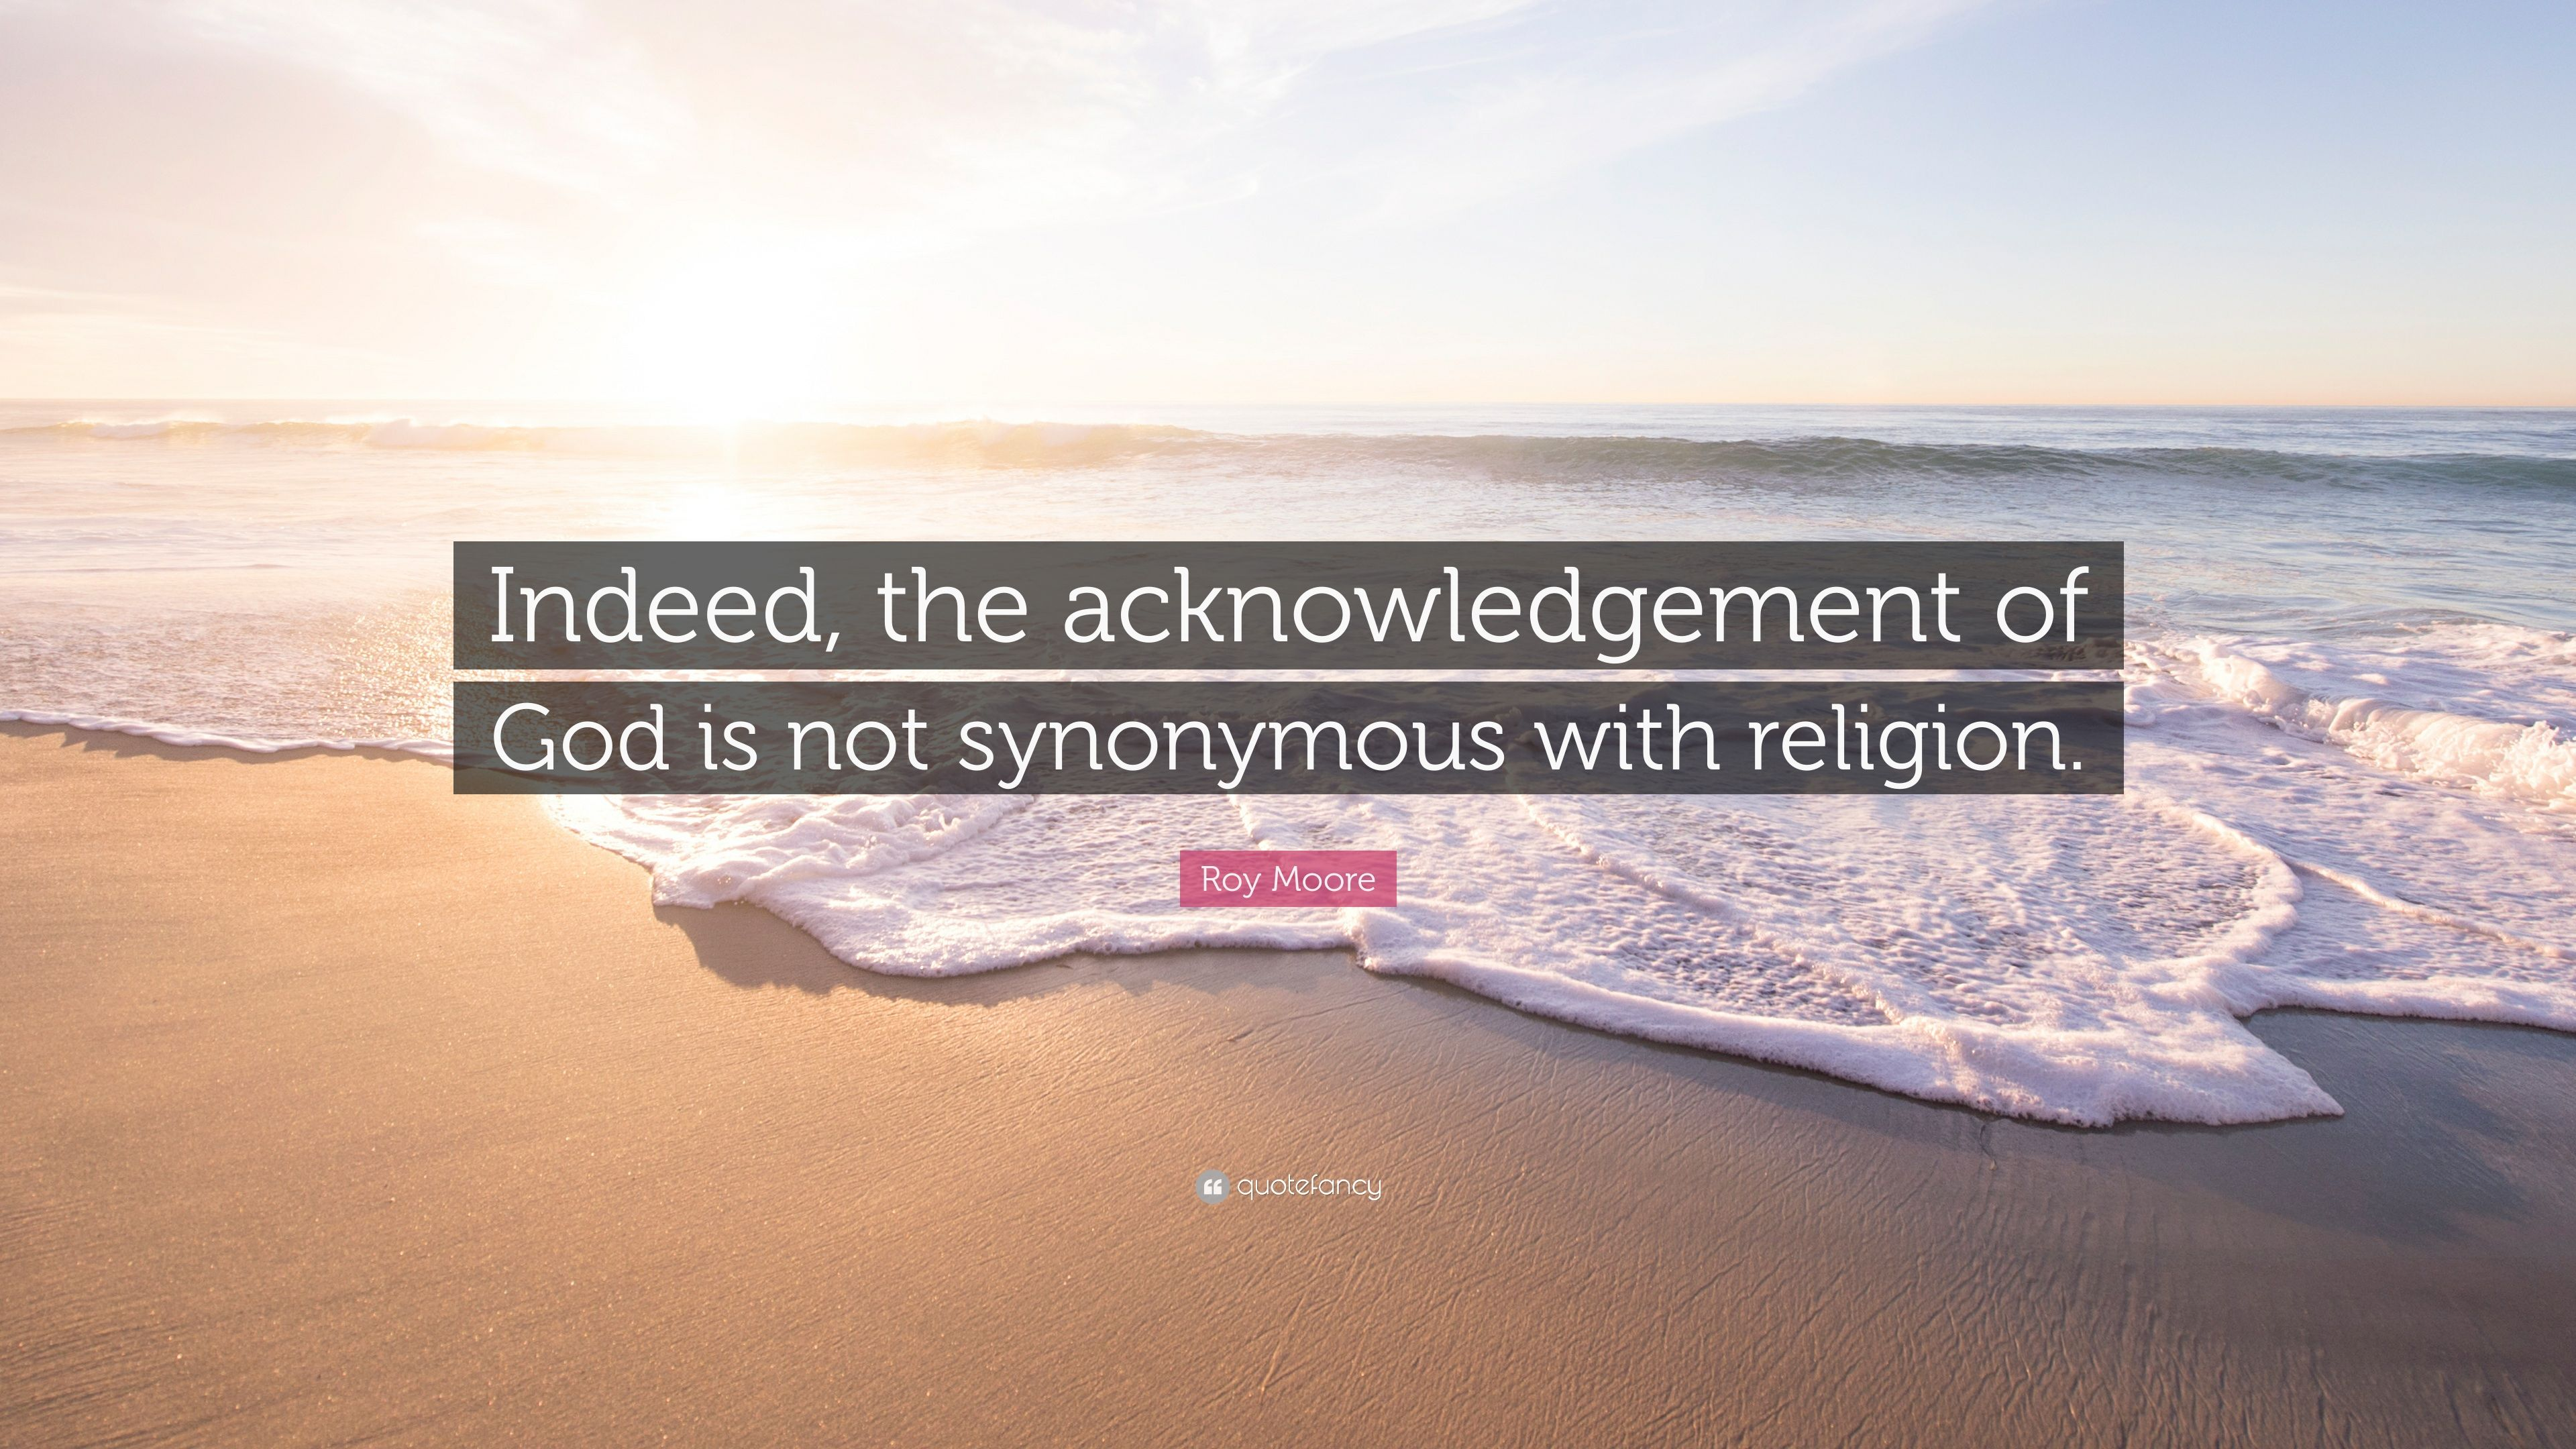 Roy moore quote indeed the acknowledgement of god is not roy moore quote indeed the acknowledgement of god is not synonymous with religion thecheapjerseys Images